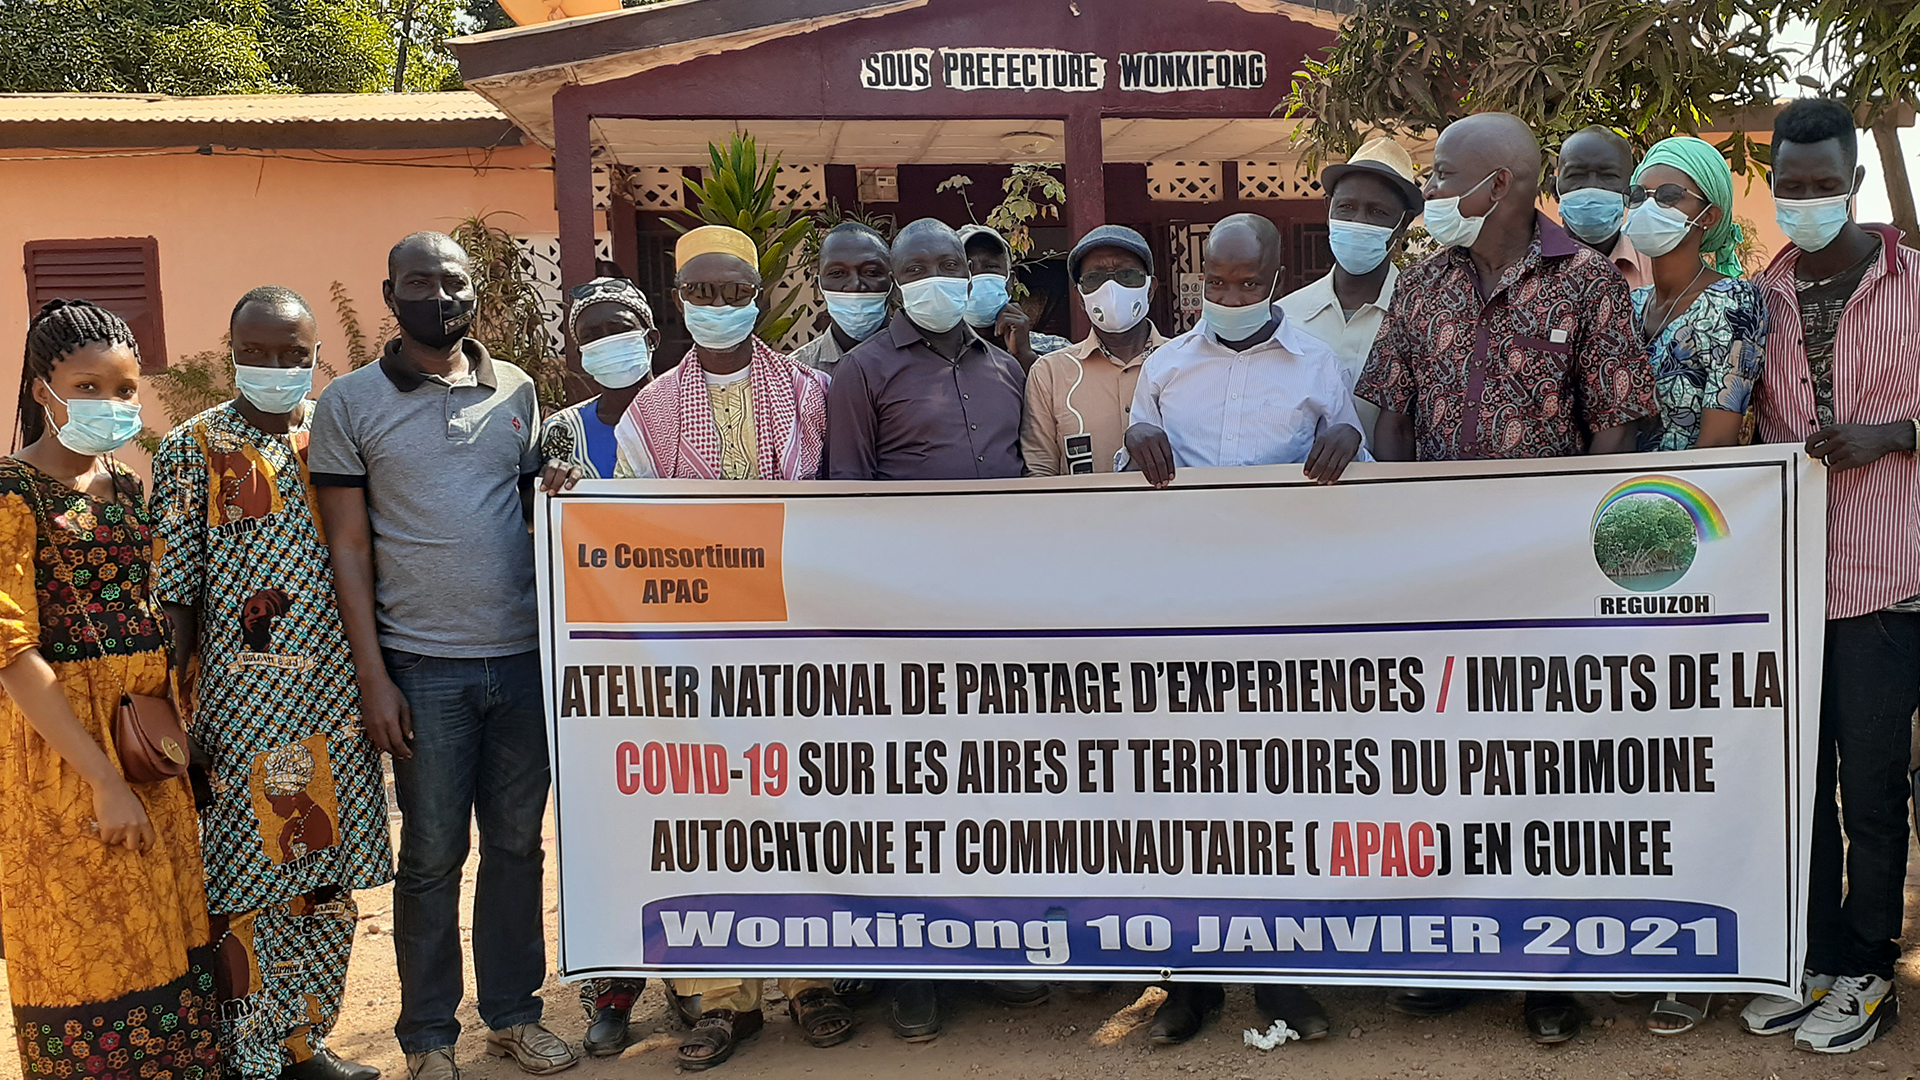 Community experiences with COVID-19 in French-speaking Africa